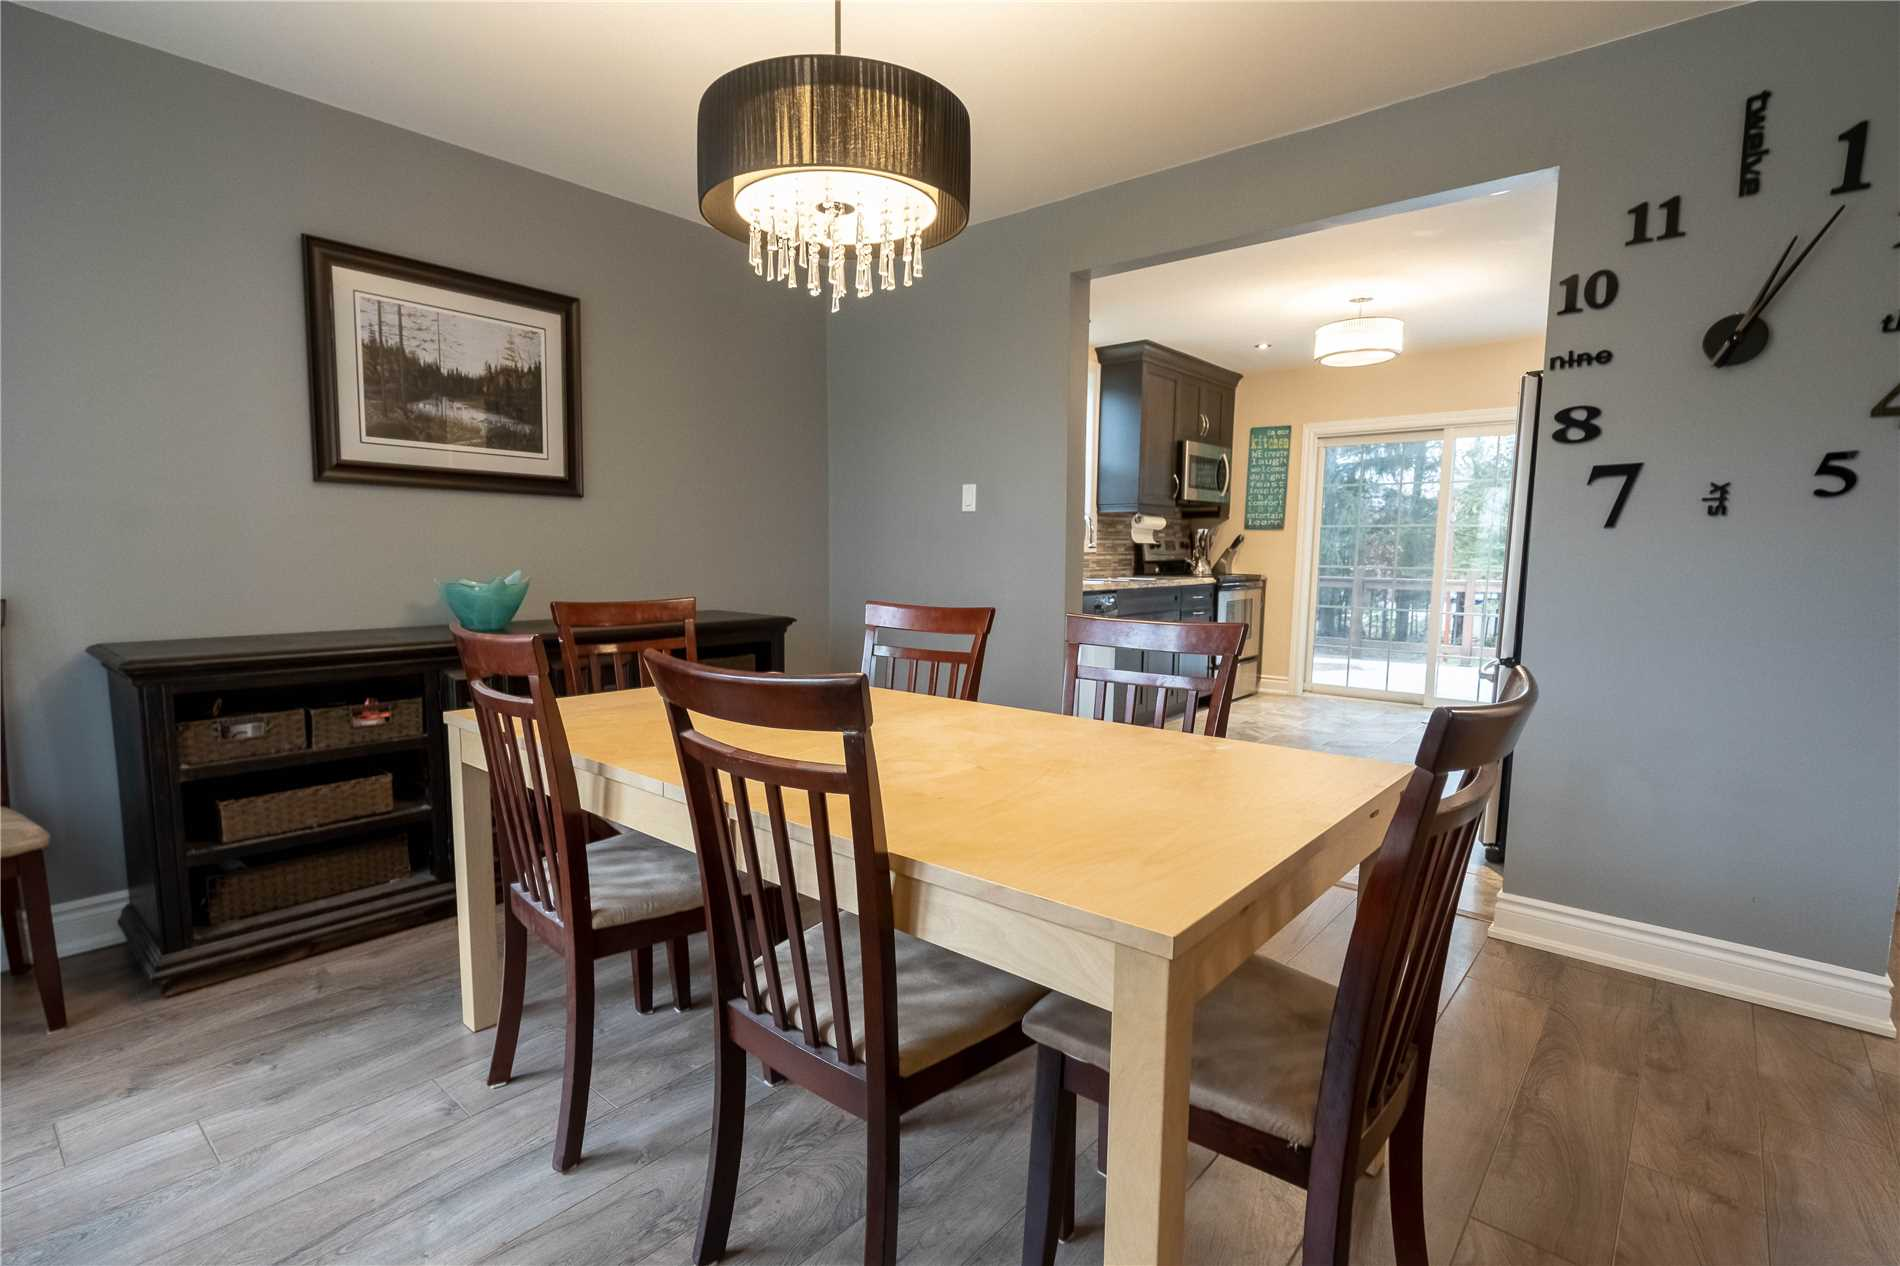 3 For Sale 54 Queen Street East Springwater ON